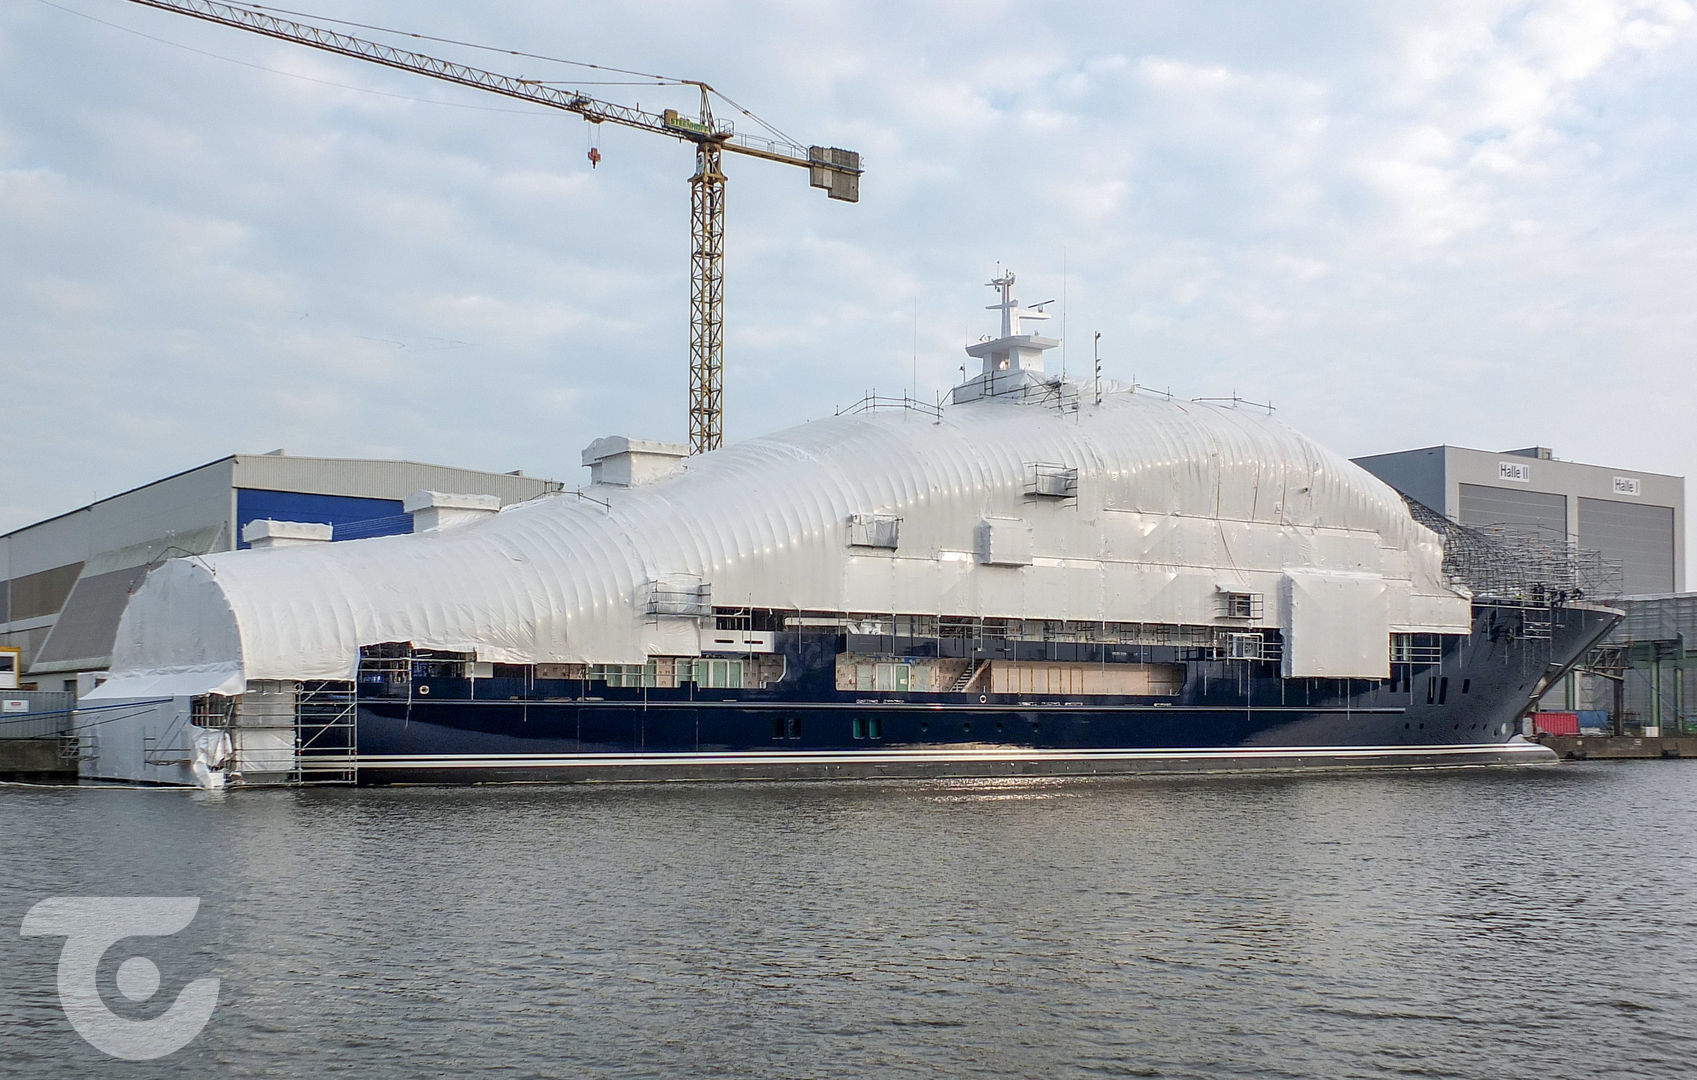 U116 explorer yacht spotted in Germany